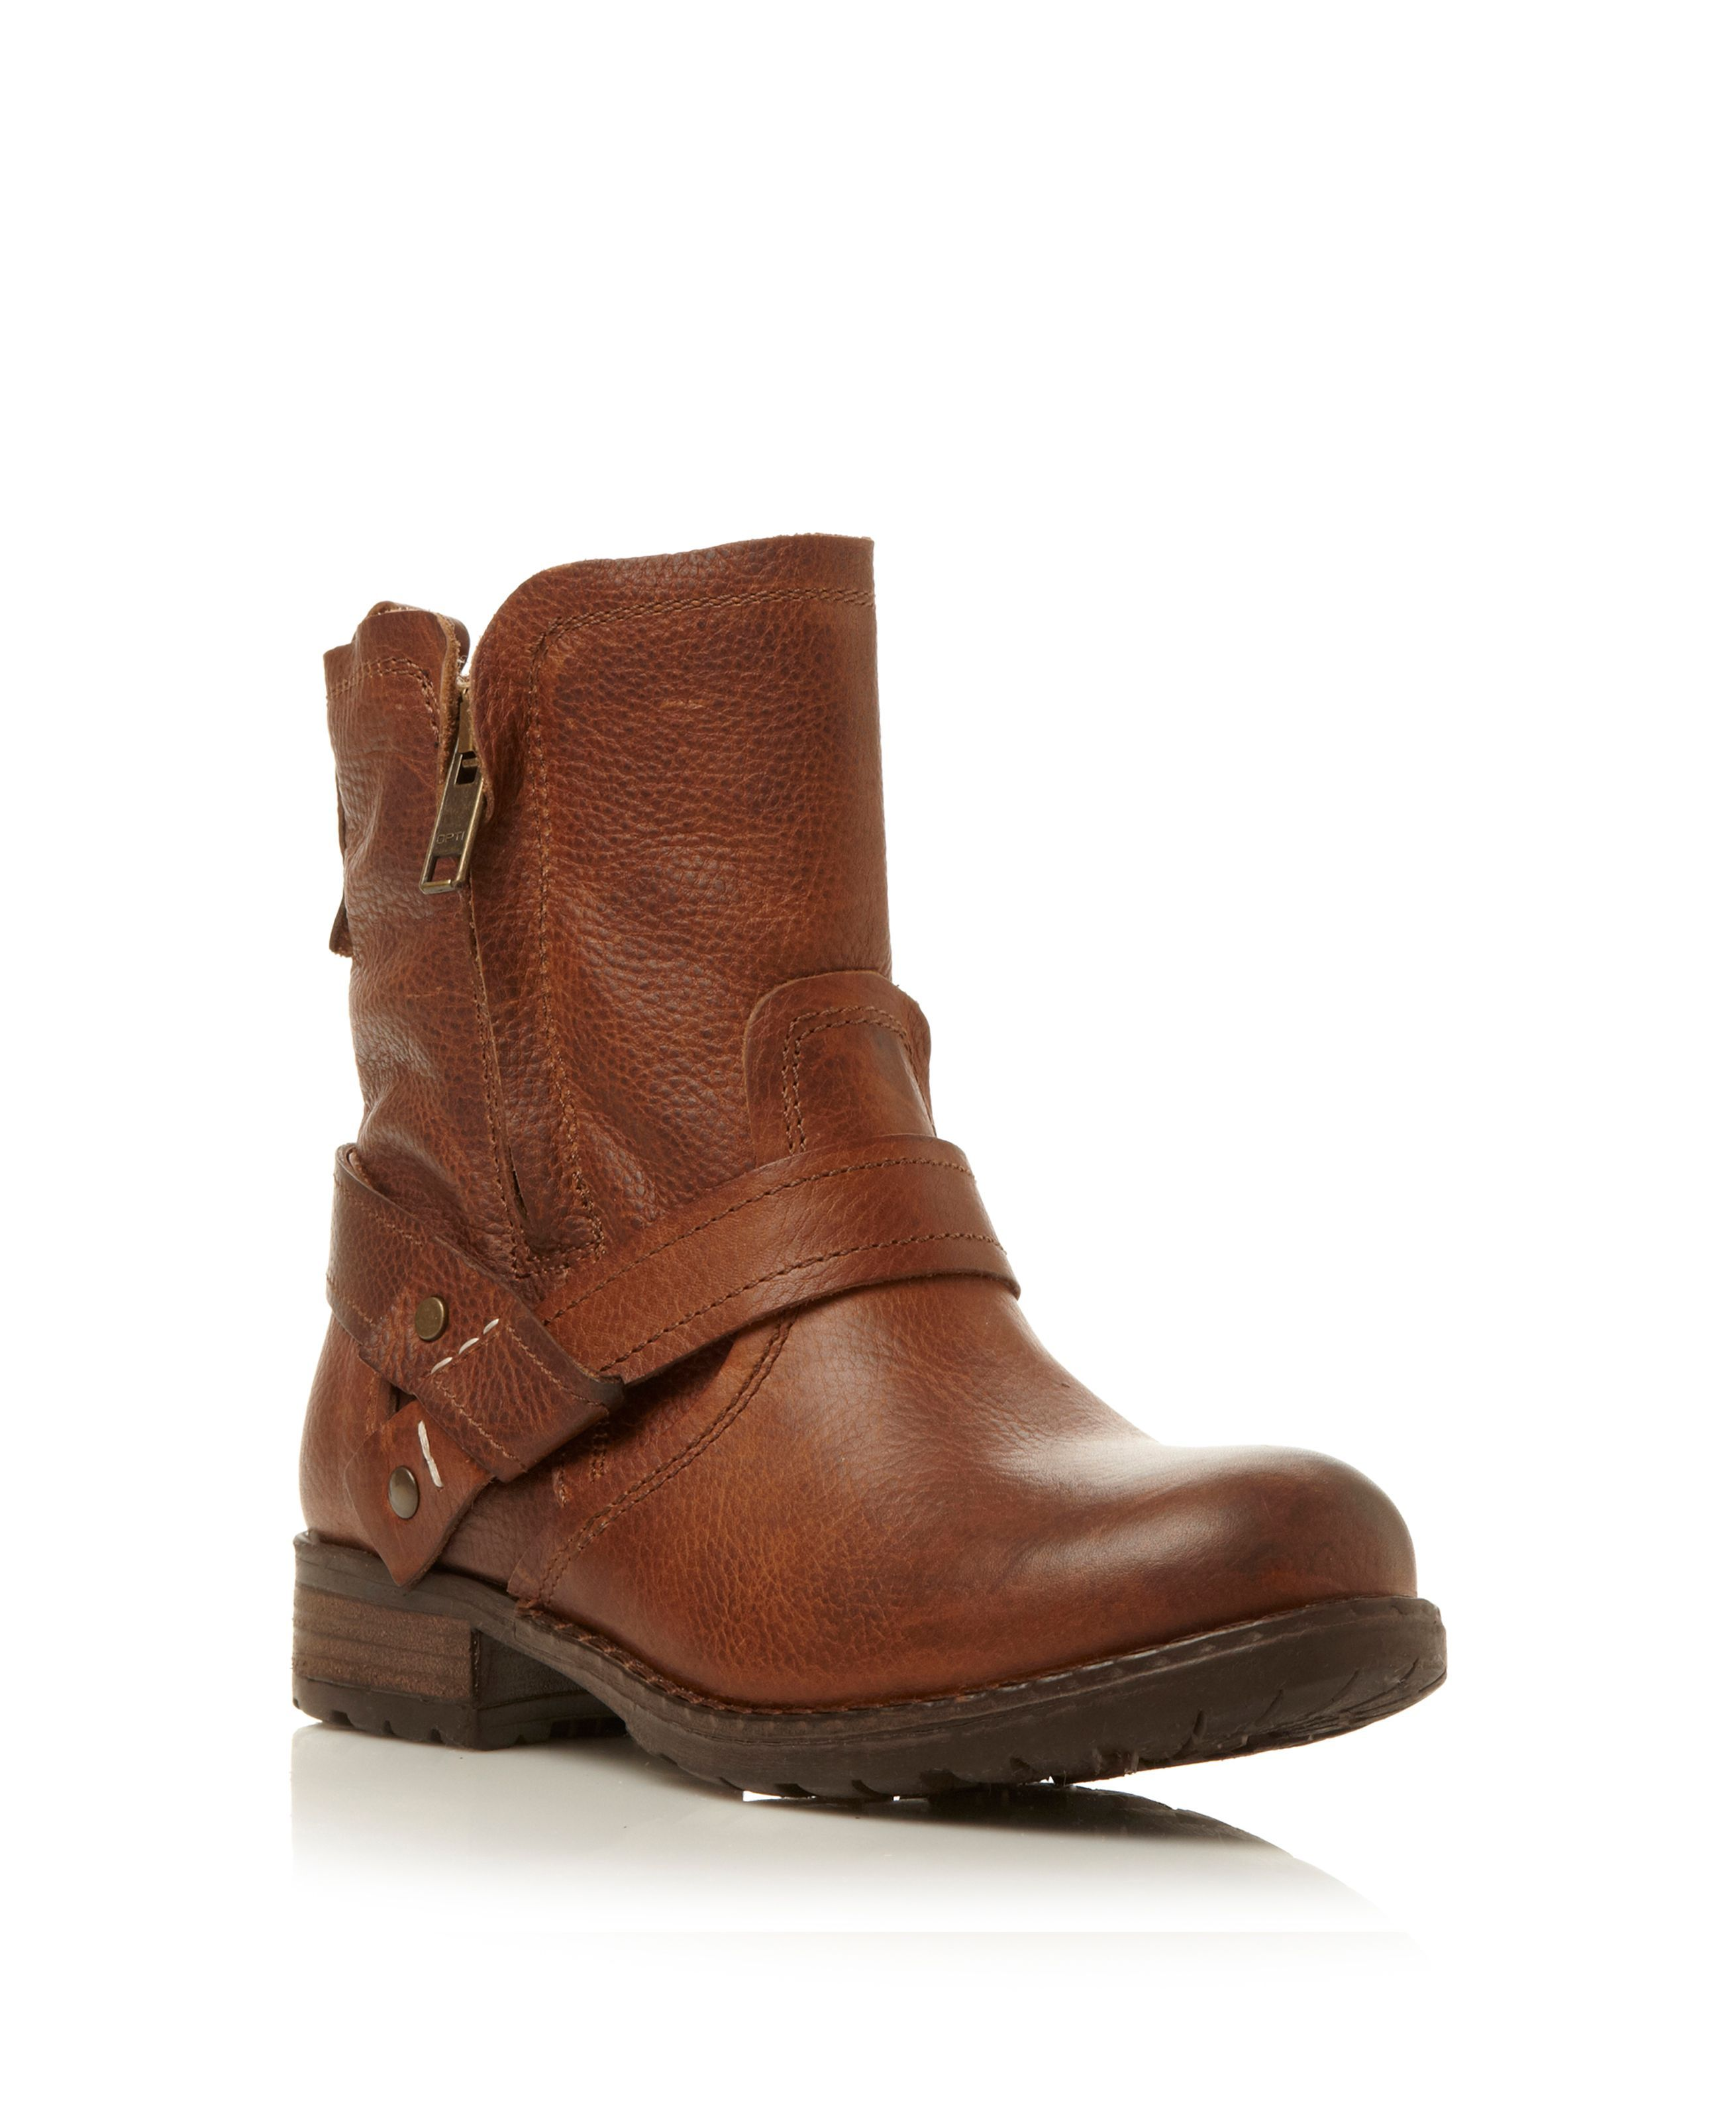 022e1cbbdd5d Steve madden Luckyone Heavy Biker Boots in Brown (Tan)